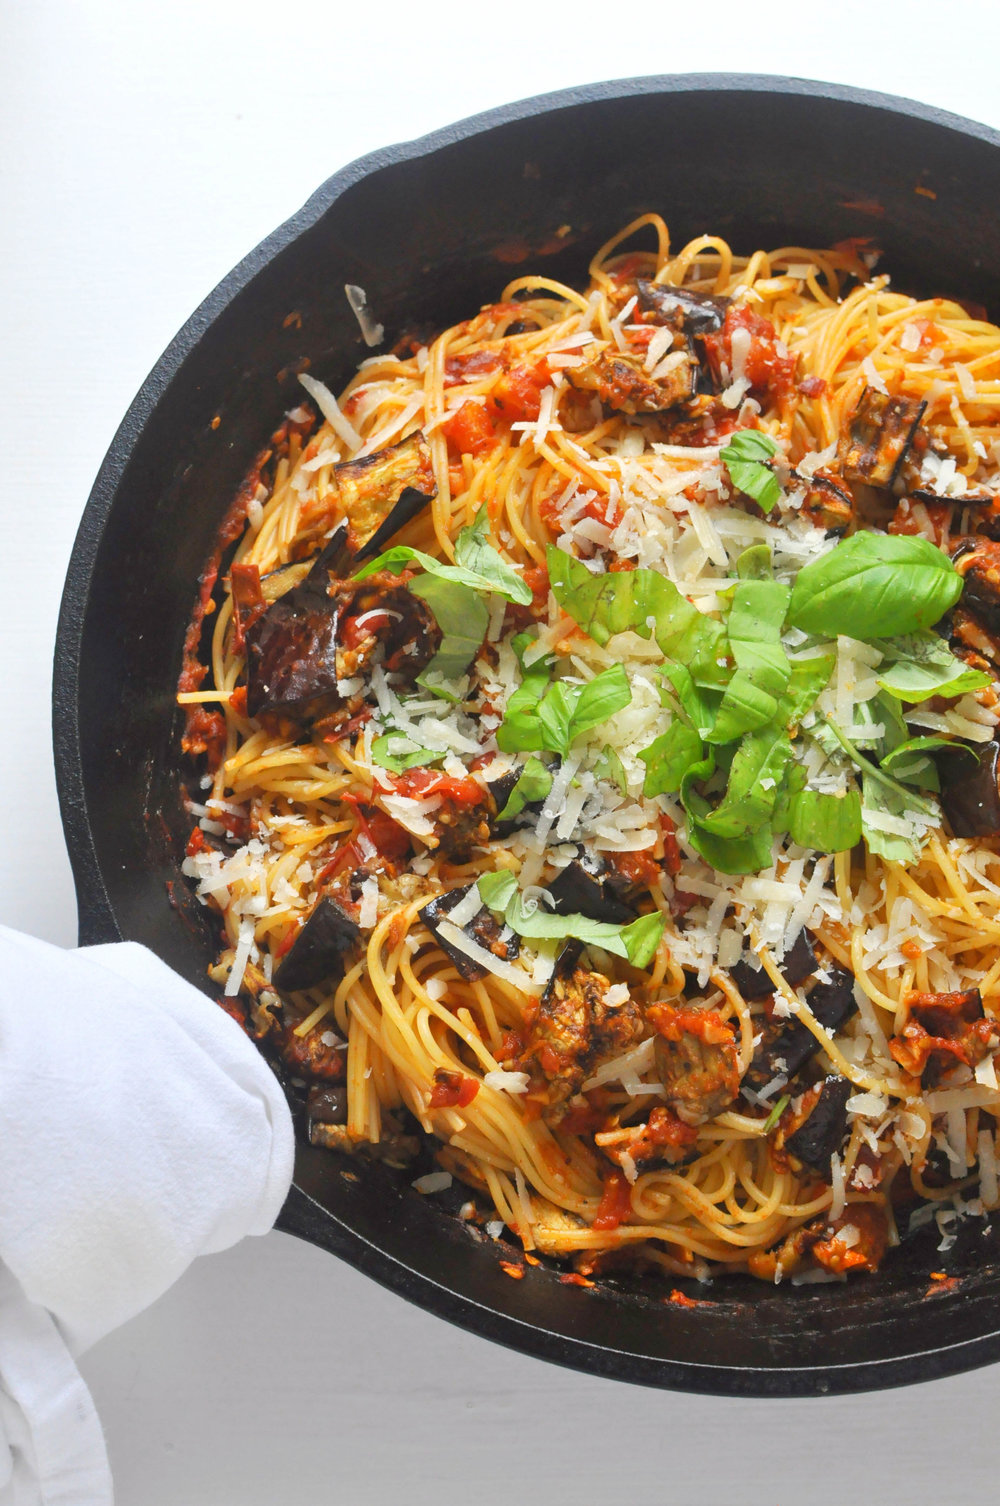 Pasta All Norma - a Sicilian pasta dish with eggplants, tomatoes, cheese and basil. A hearty, vegetarian recipe | Shiny Happy Bright